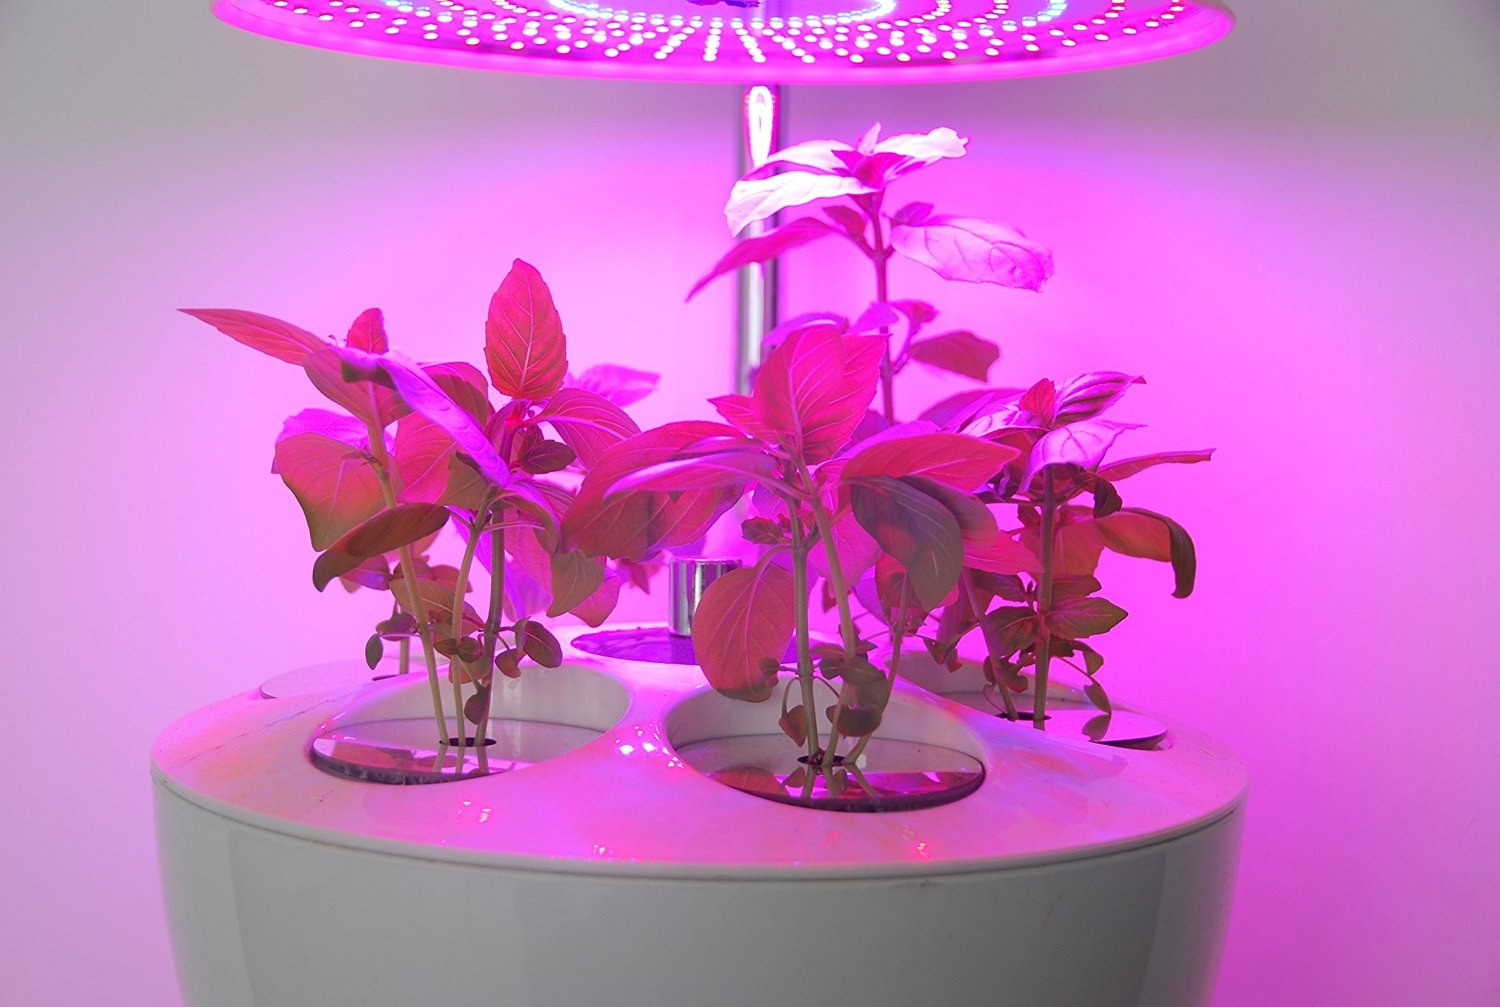 Cheap Fully Automated Grow System, find Fully Automated Grow